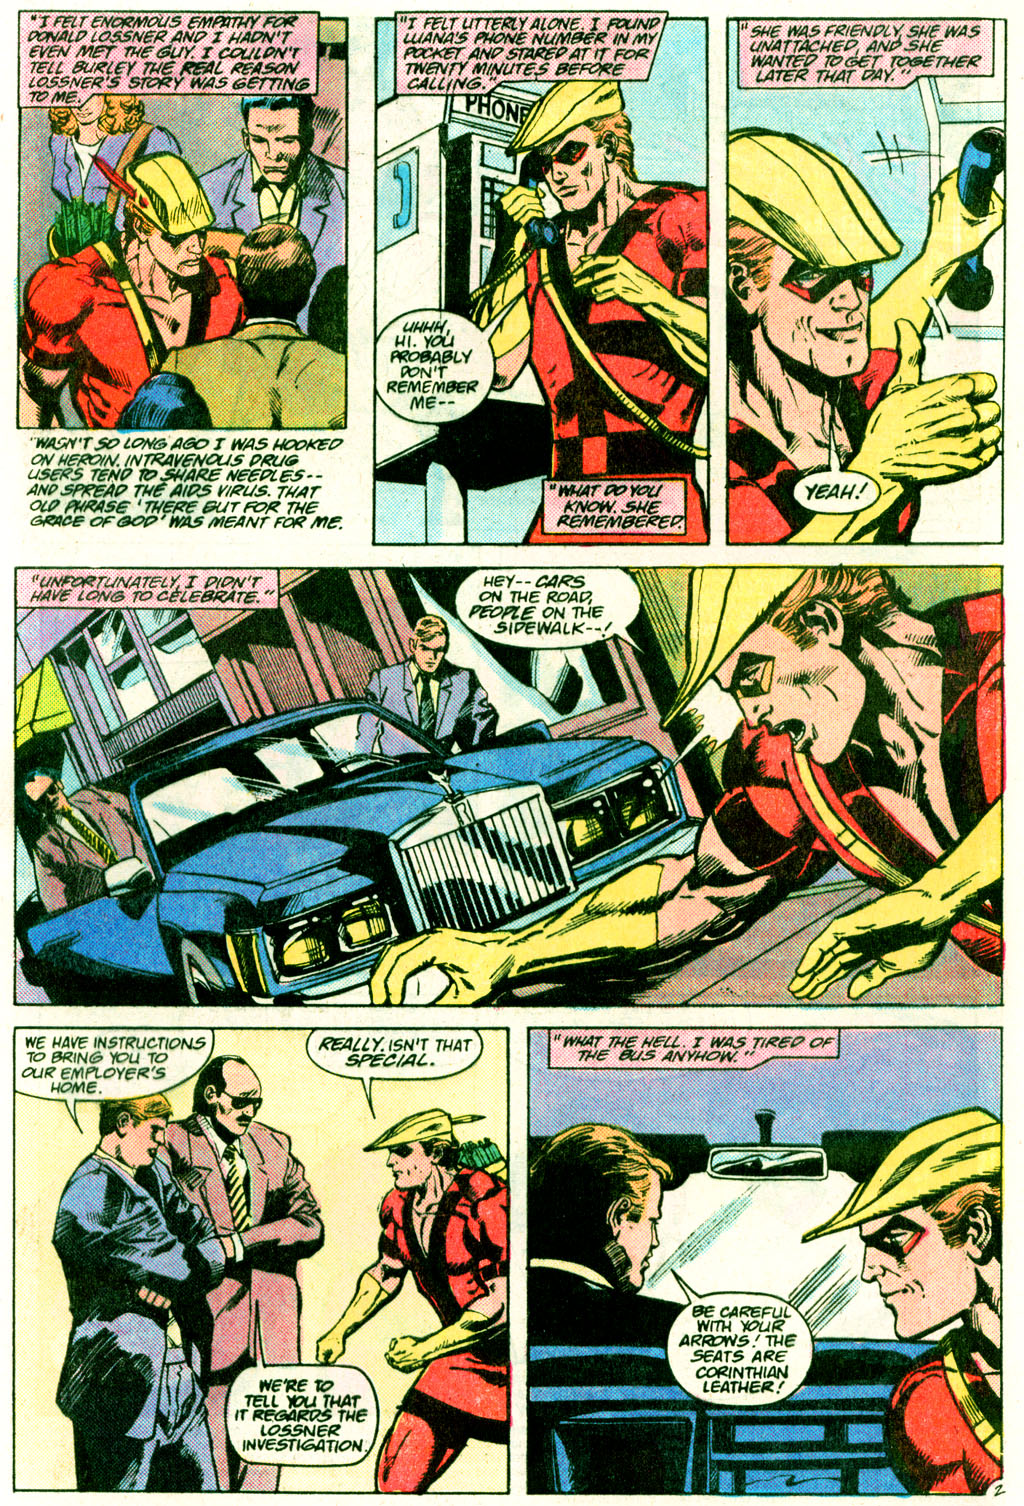 Read online Action Comics (1938) comic -  Issue #638 - 3